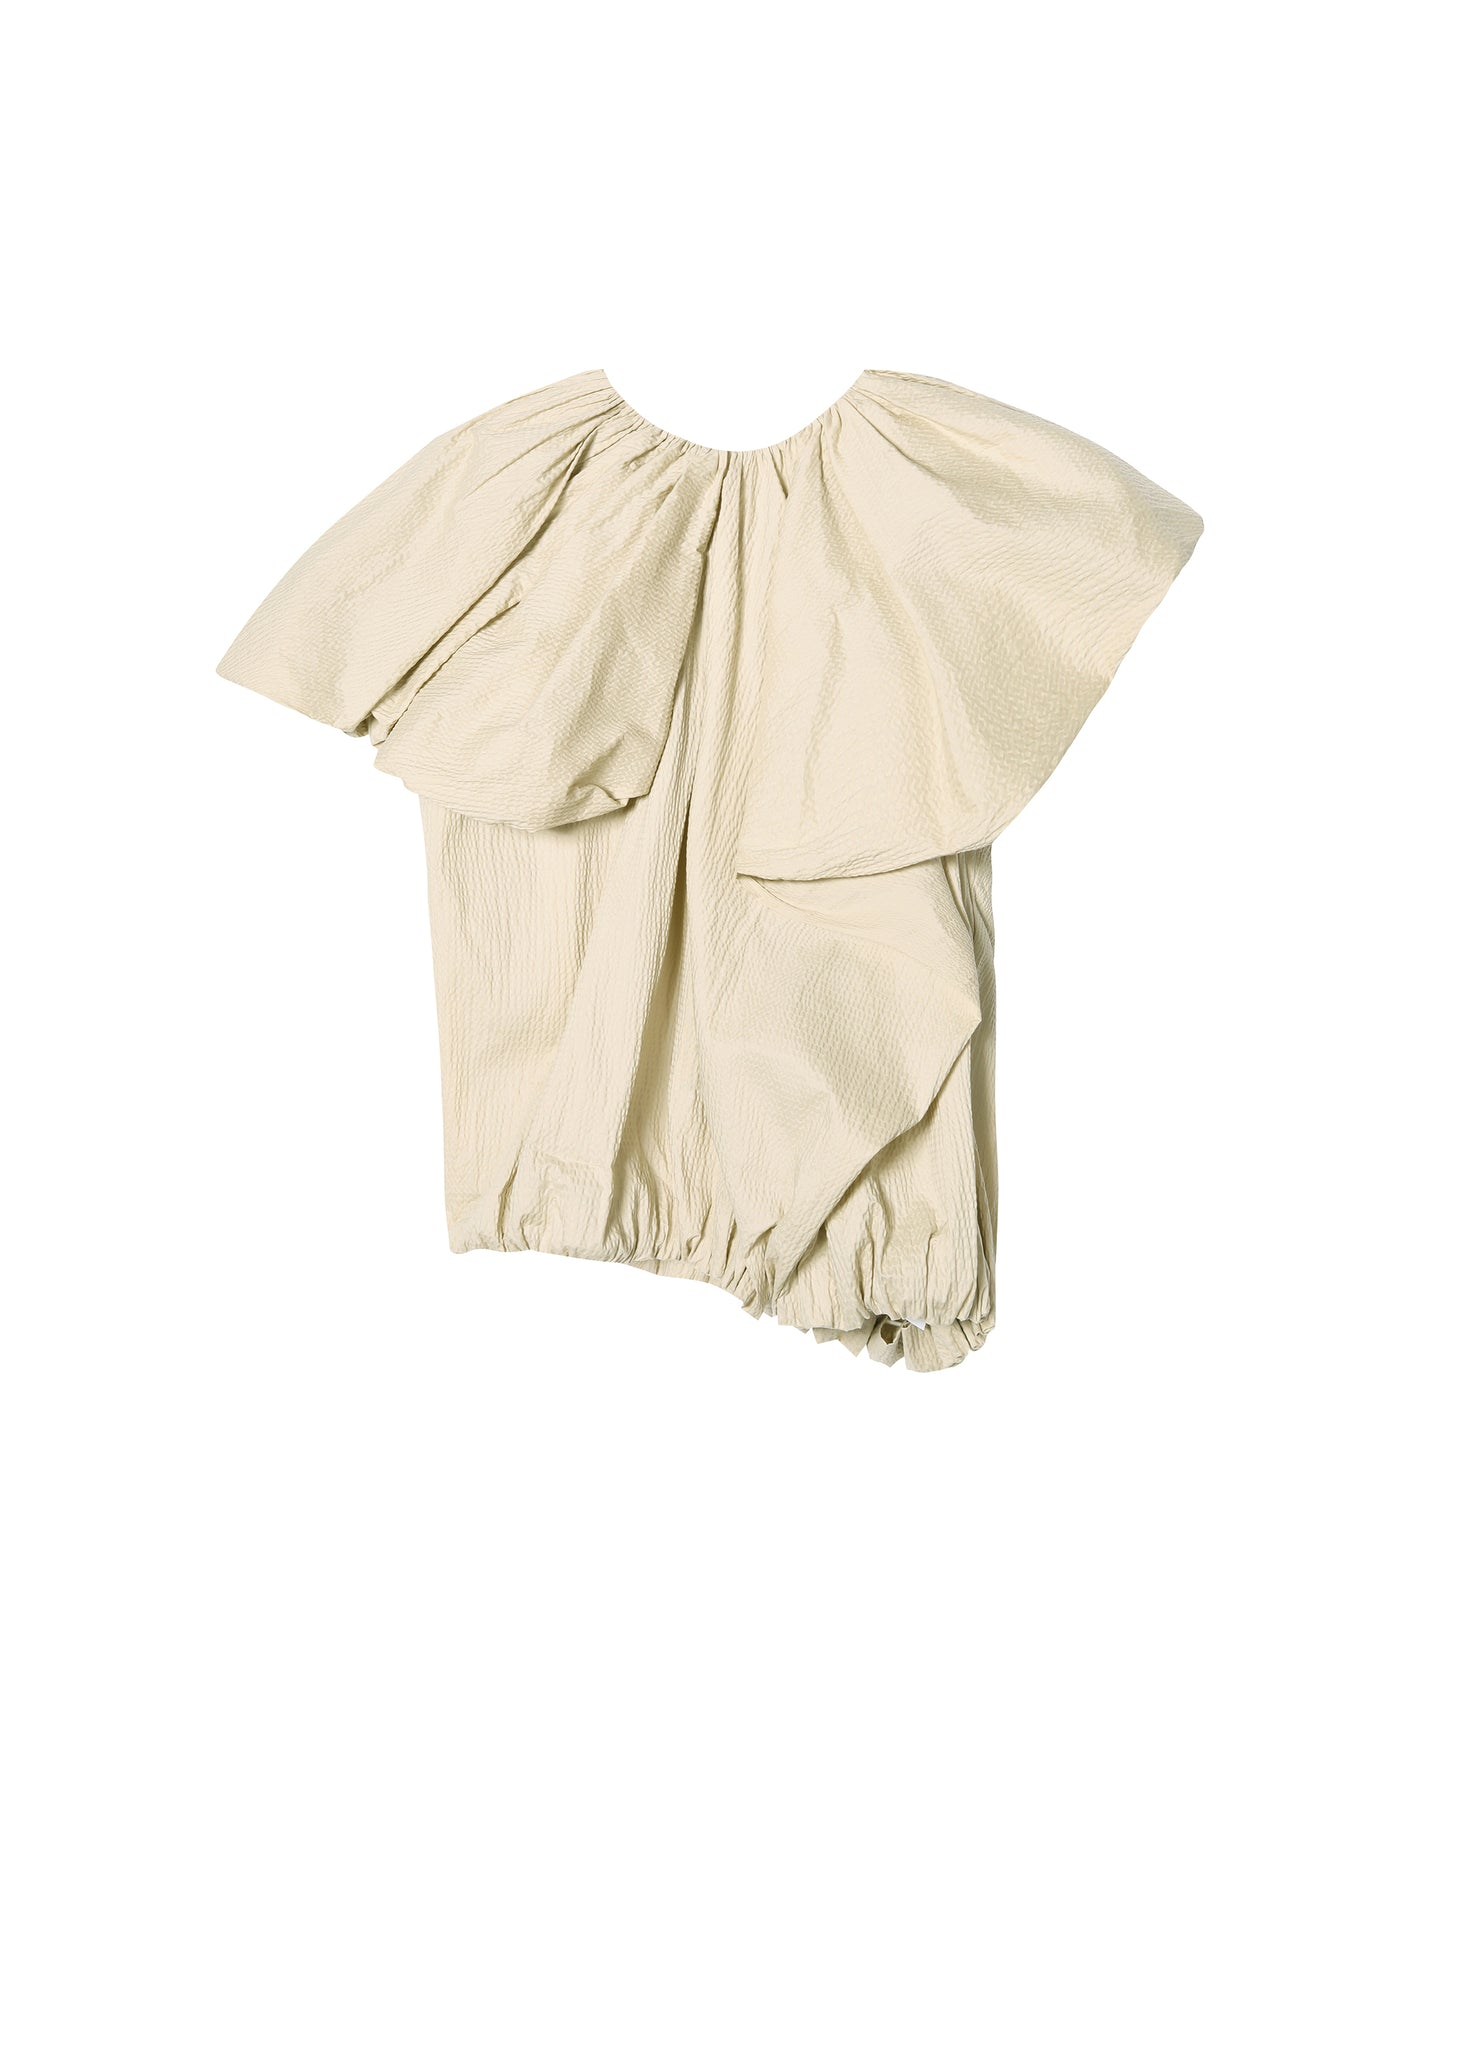 JNBY Ruched Top in Cotton